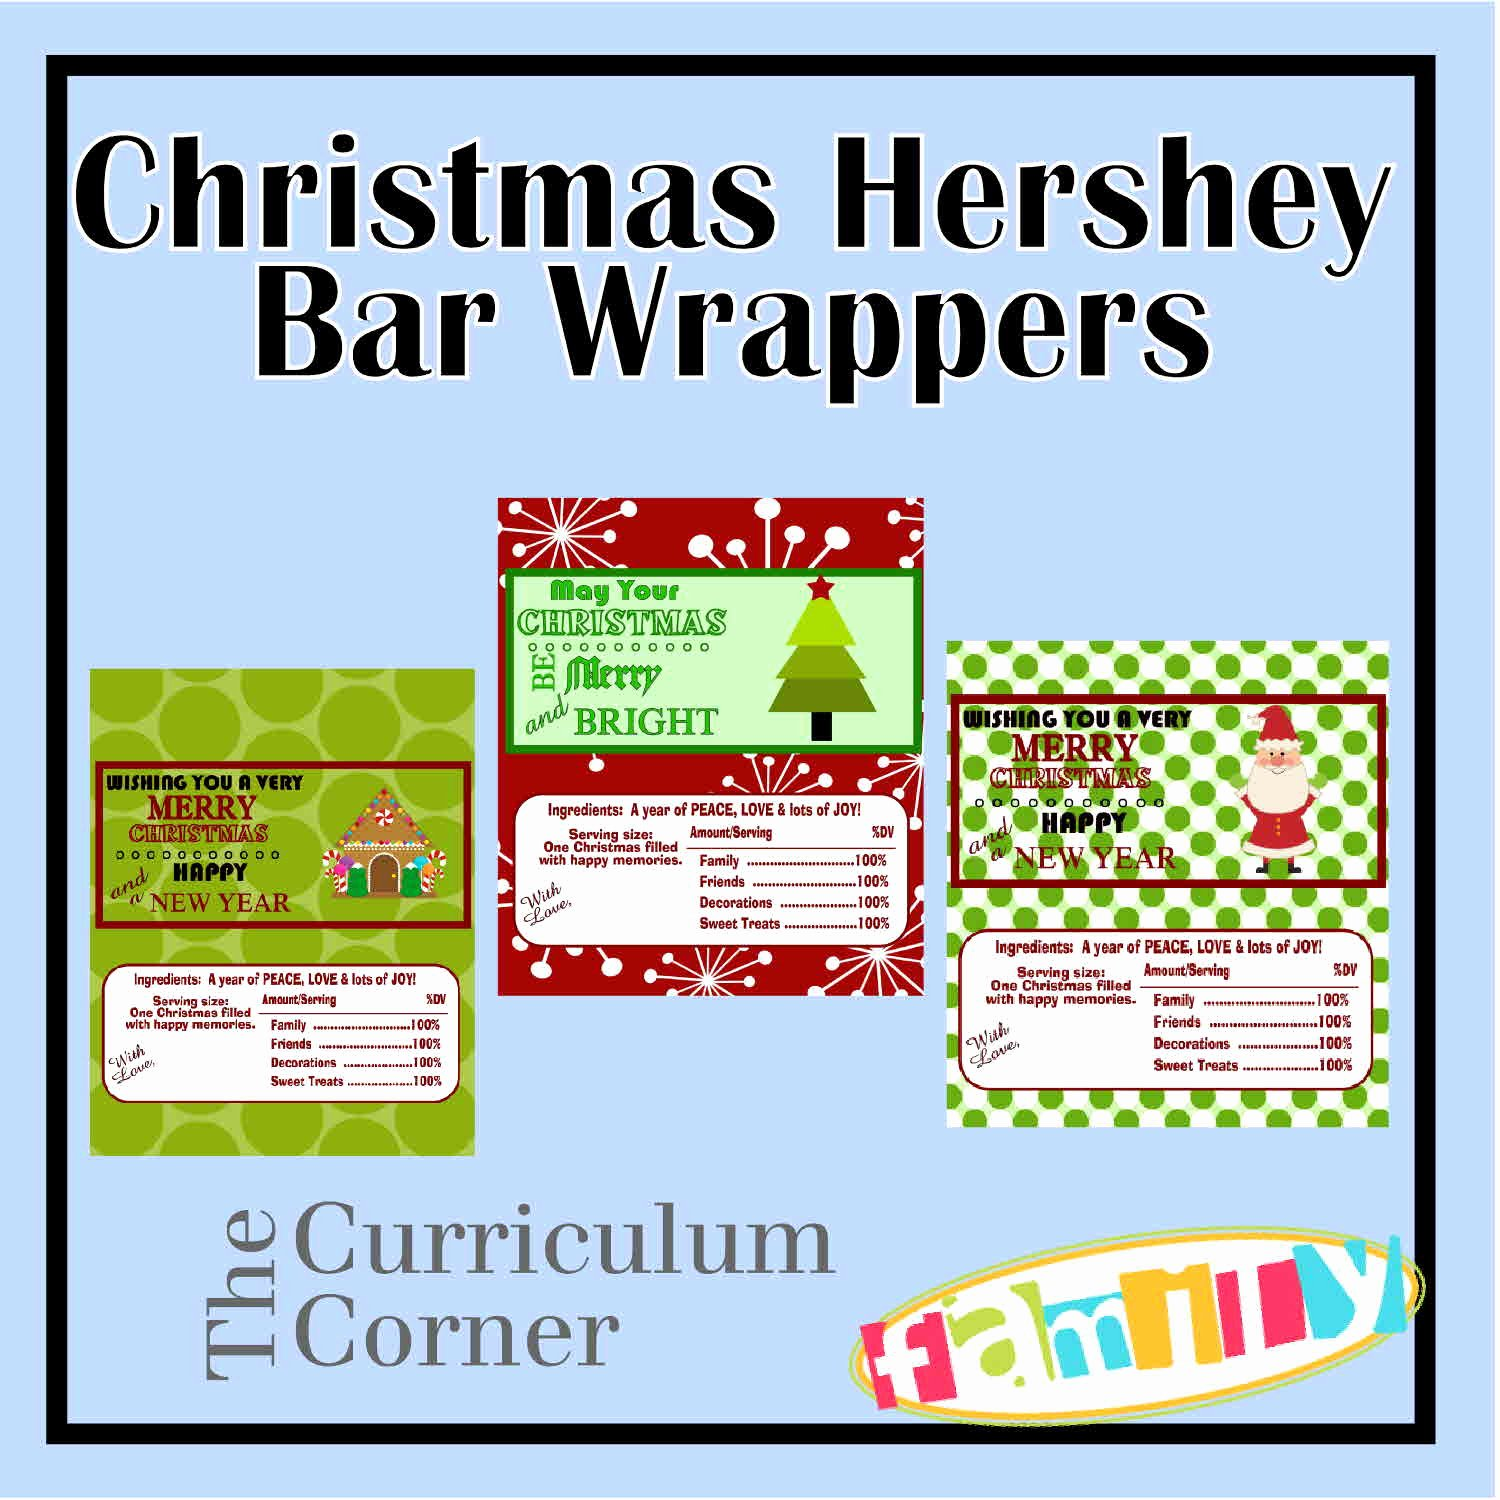 Hershey Bar Wrapper Dimensions Best Of Christmas Hershey Bar Wrappers